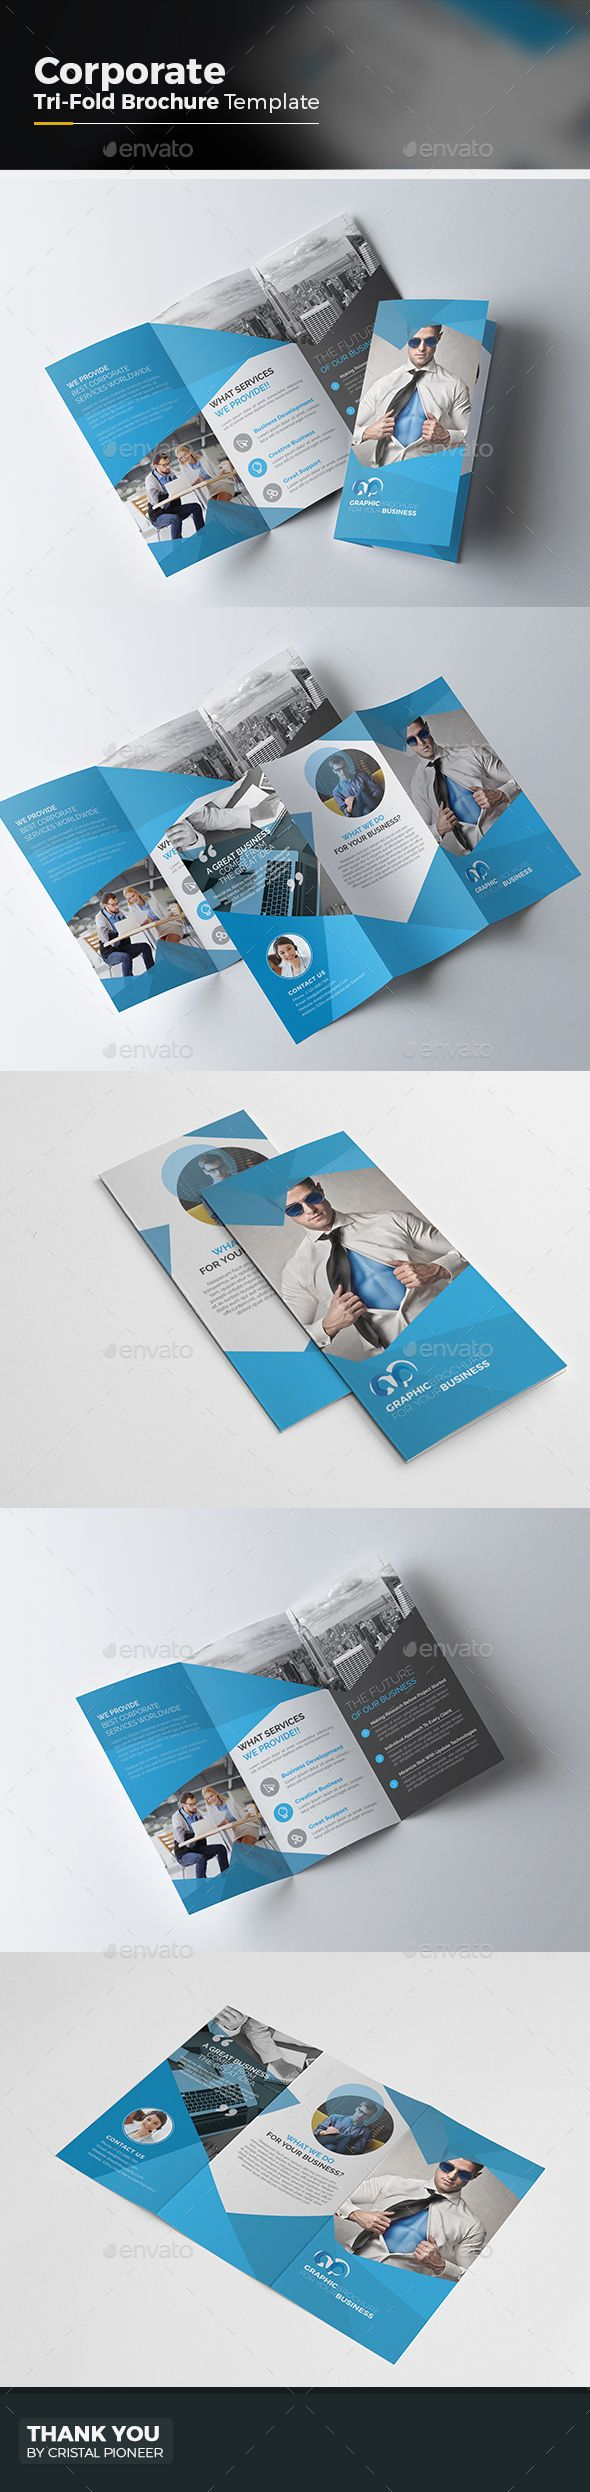 Corporate Tri fold Brochure Template Vector EPS, AI. Download here: http://graphicriver.net/item/corporate-tri-fold-brochure/15203634?ref=ksioks